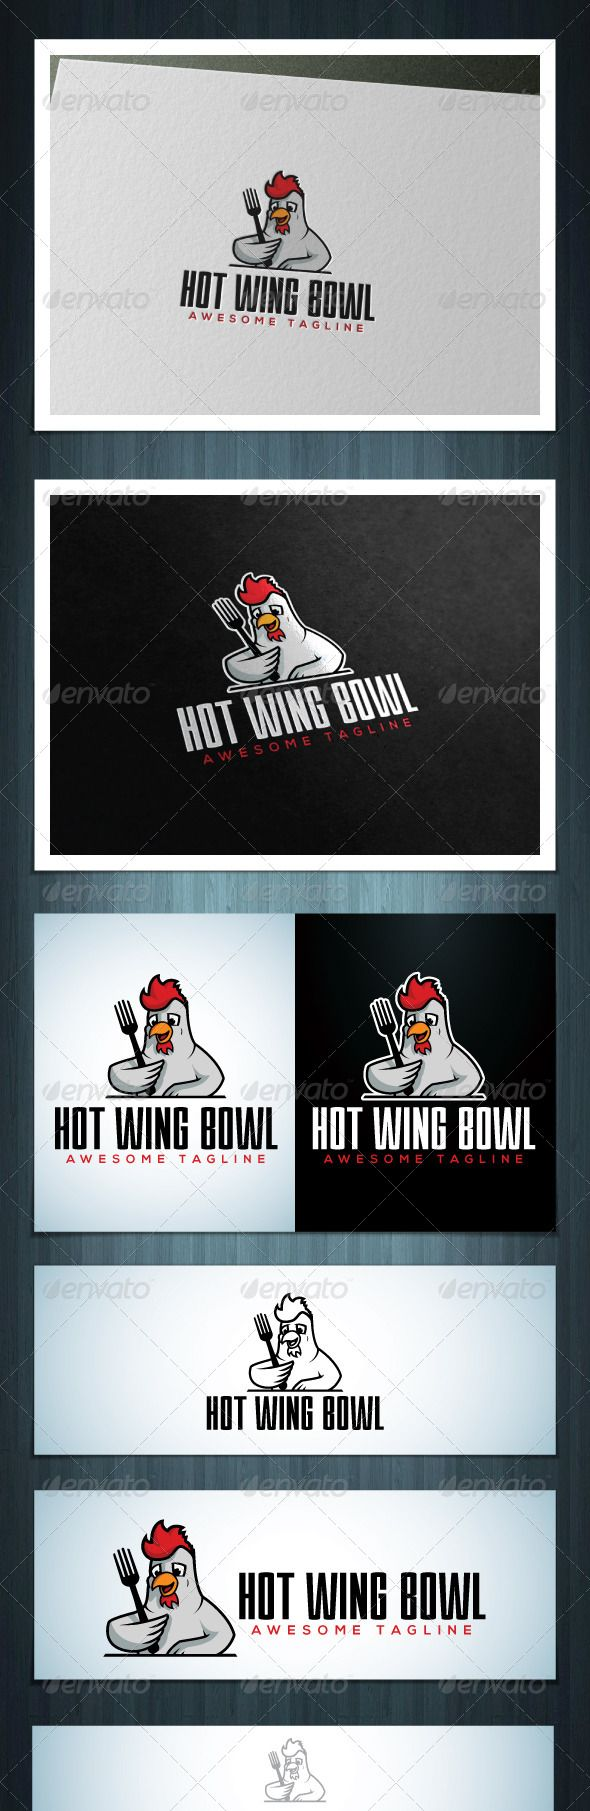 Hot Wing Bowl by Scredeck Hot Wing Bowl is a multipurpose logo, can be used in any companies related to chicken, food, fast food etc. Ai & EPS 10 / CMYK /